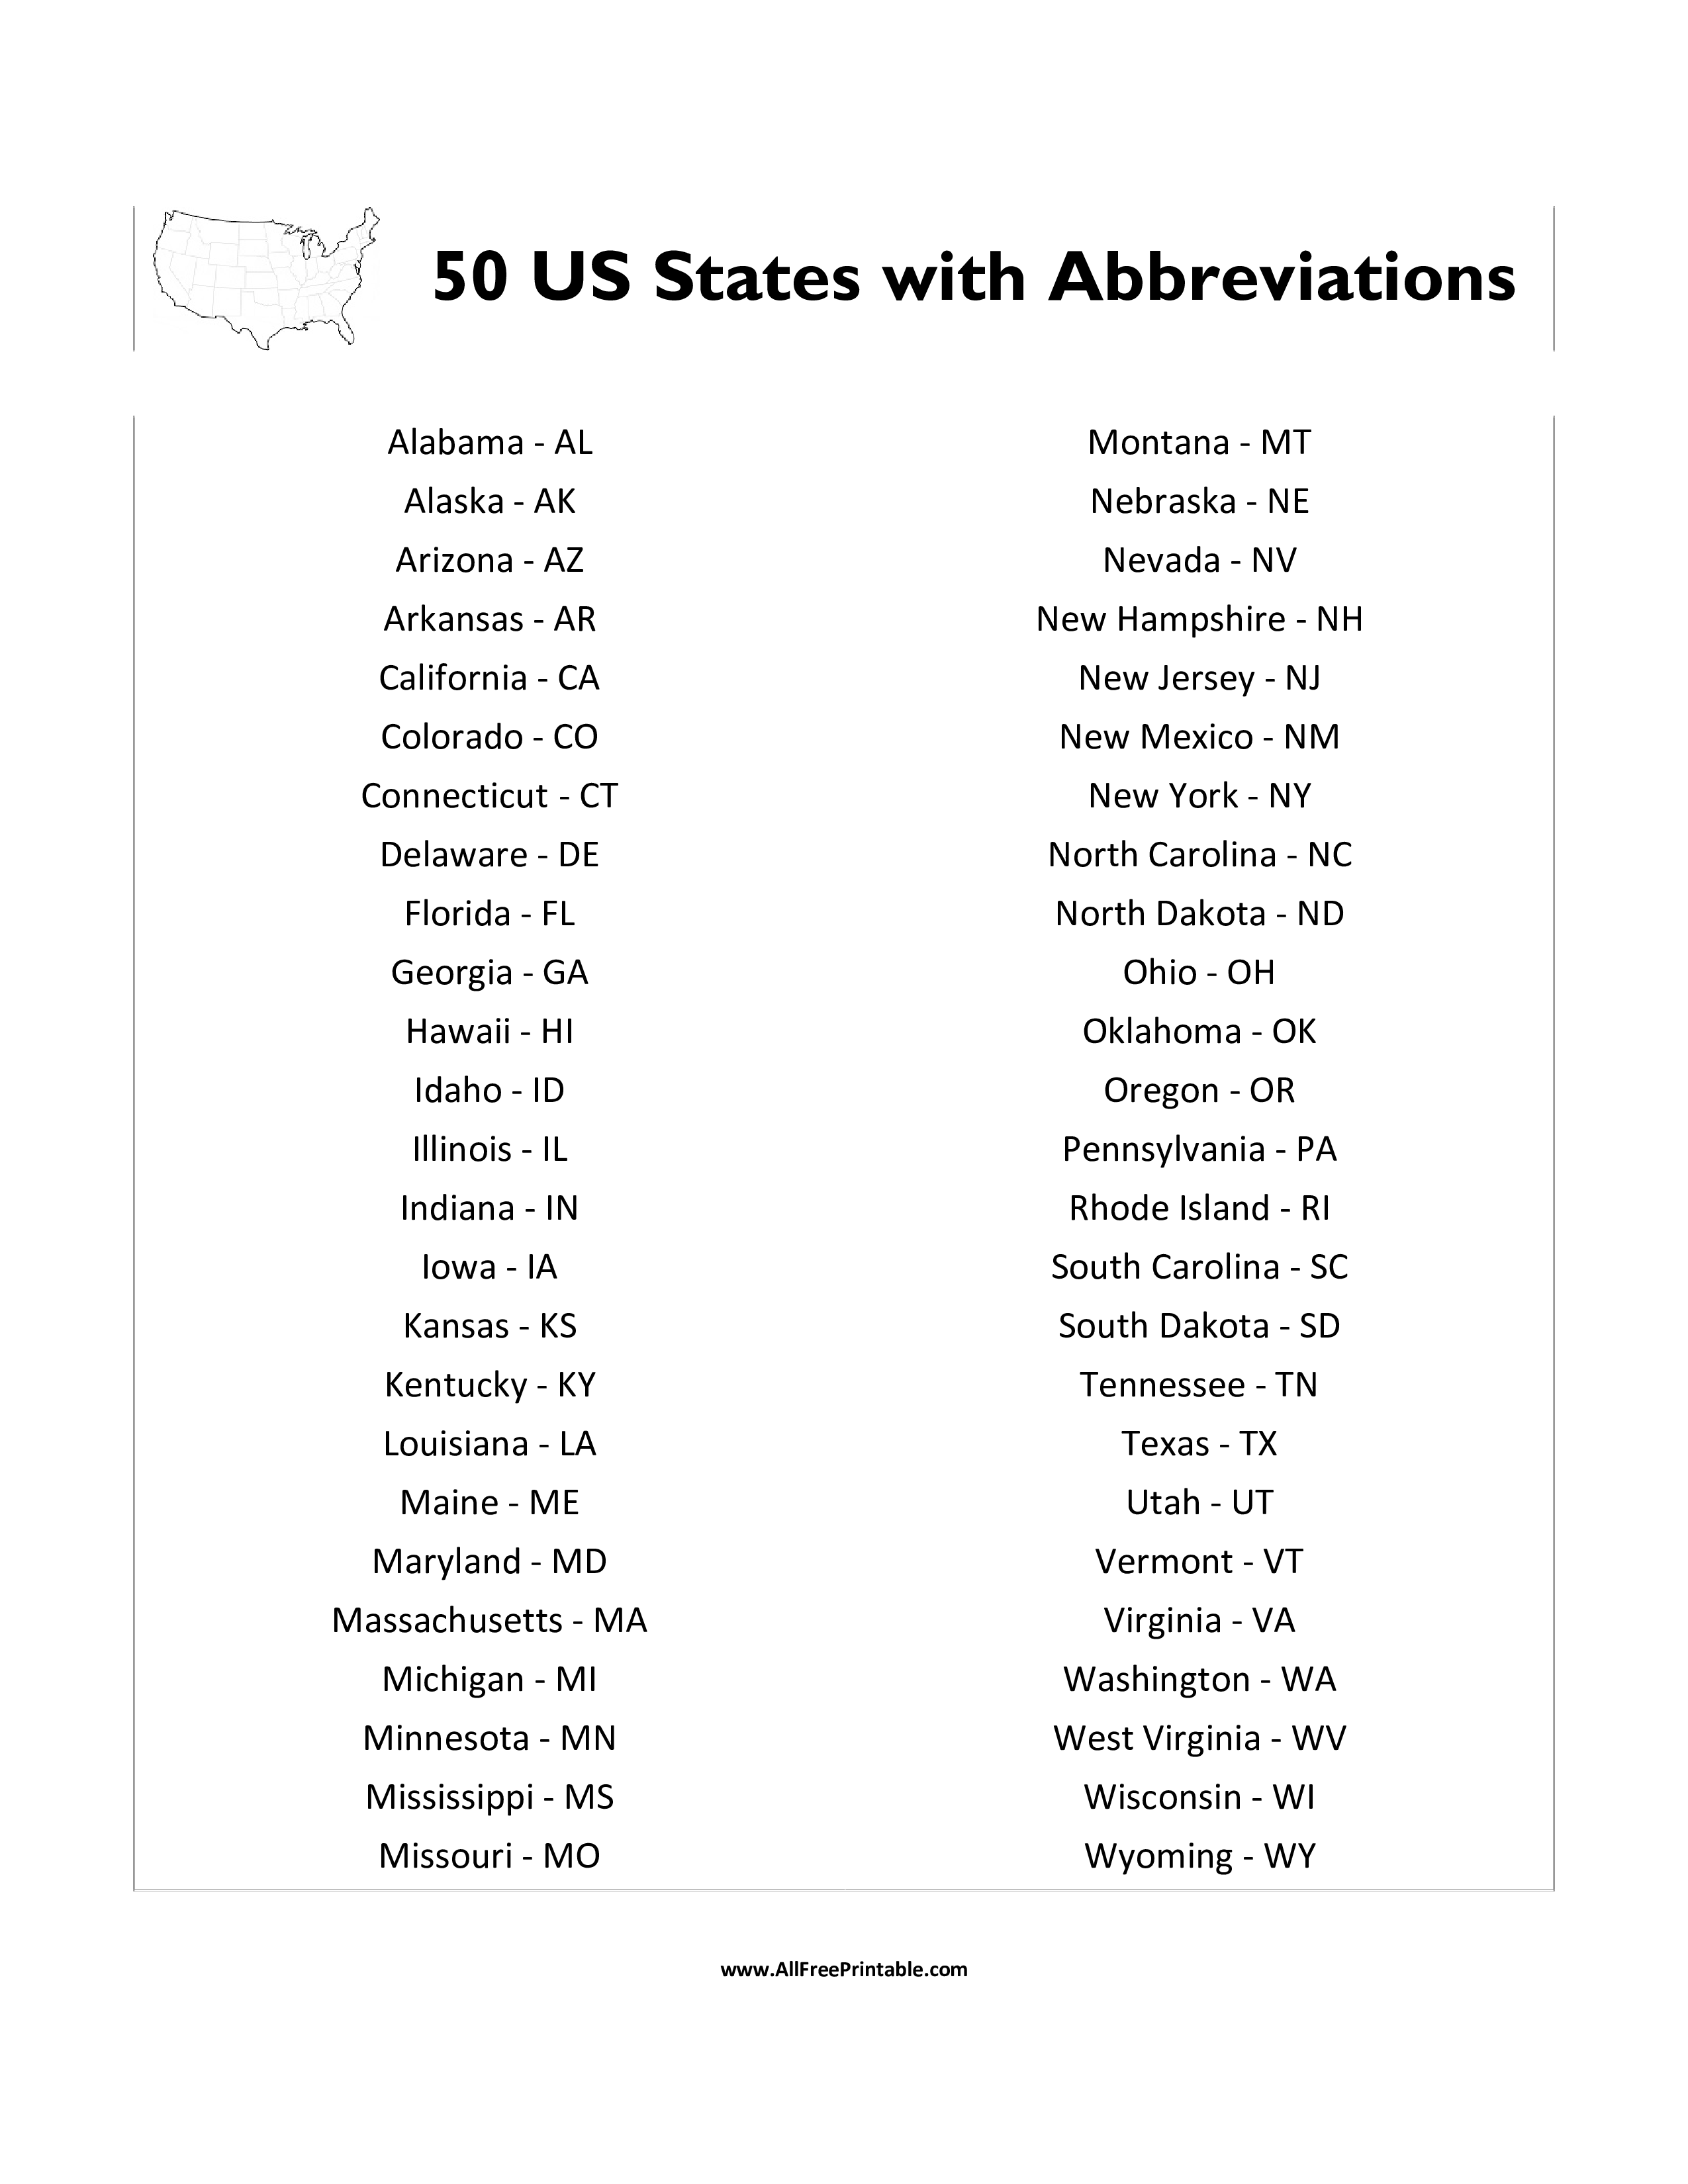 50 Us States With Abbreviations List